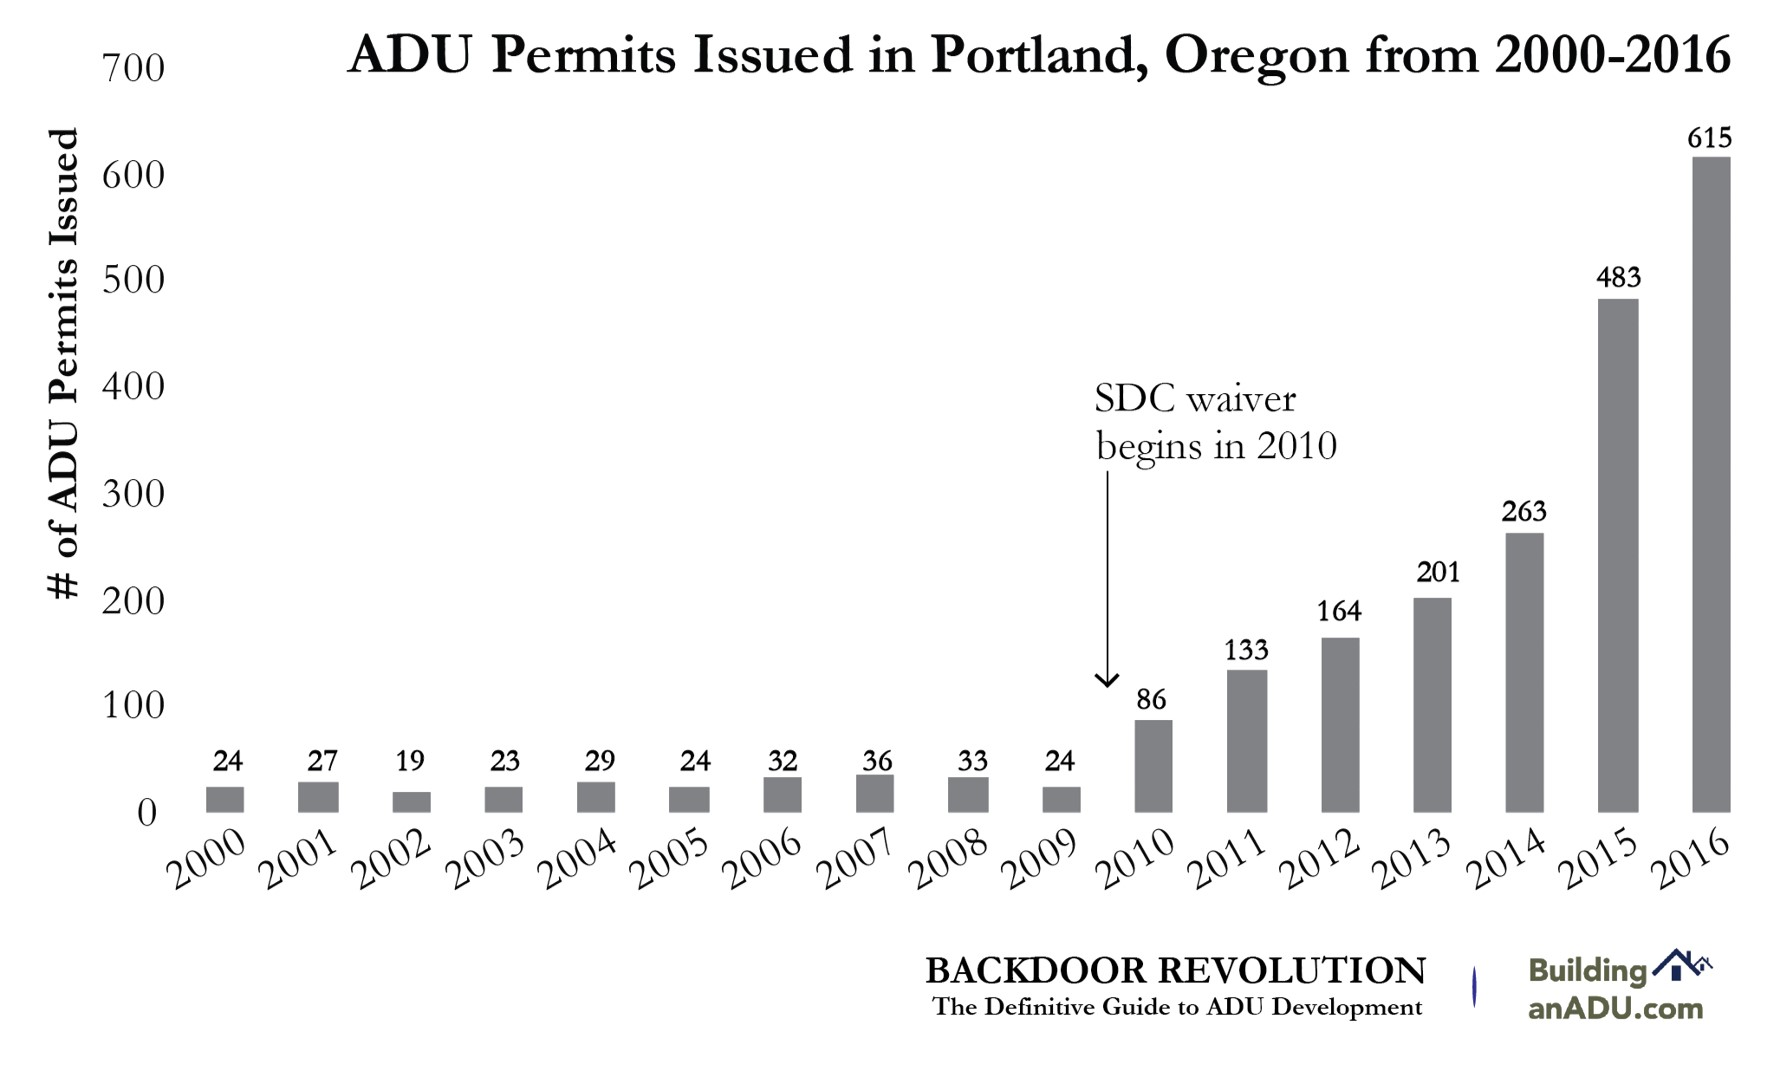 Portland has been a pioneering US city in ADU development. ADU development has increased exponentially since 2010.